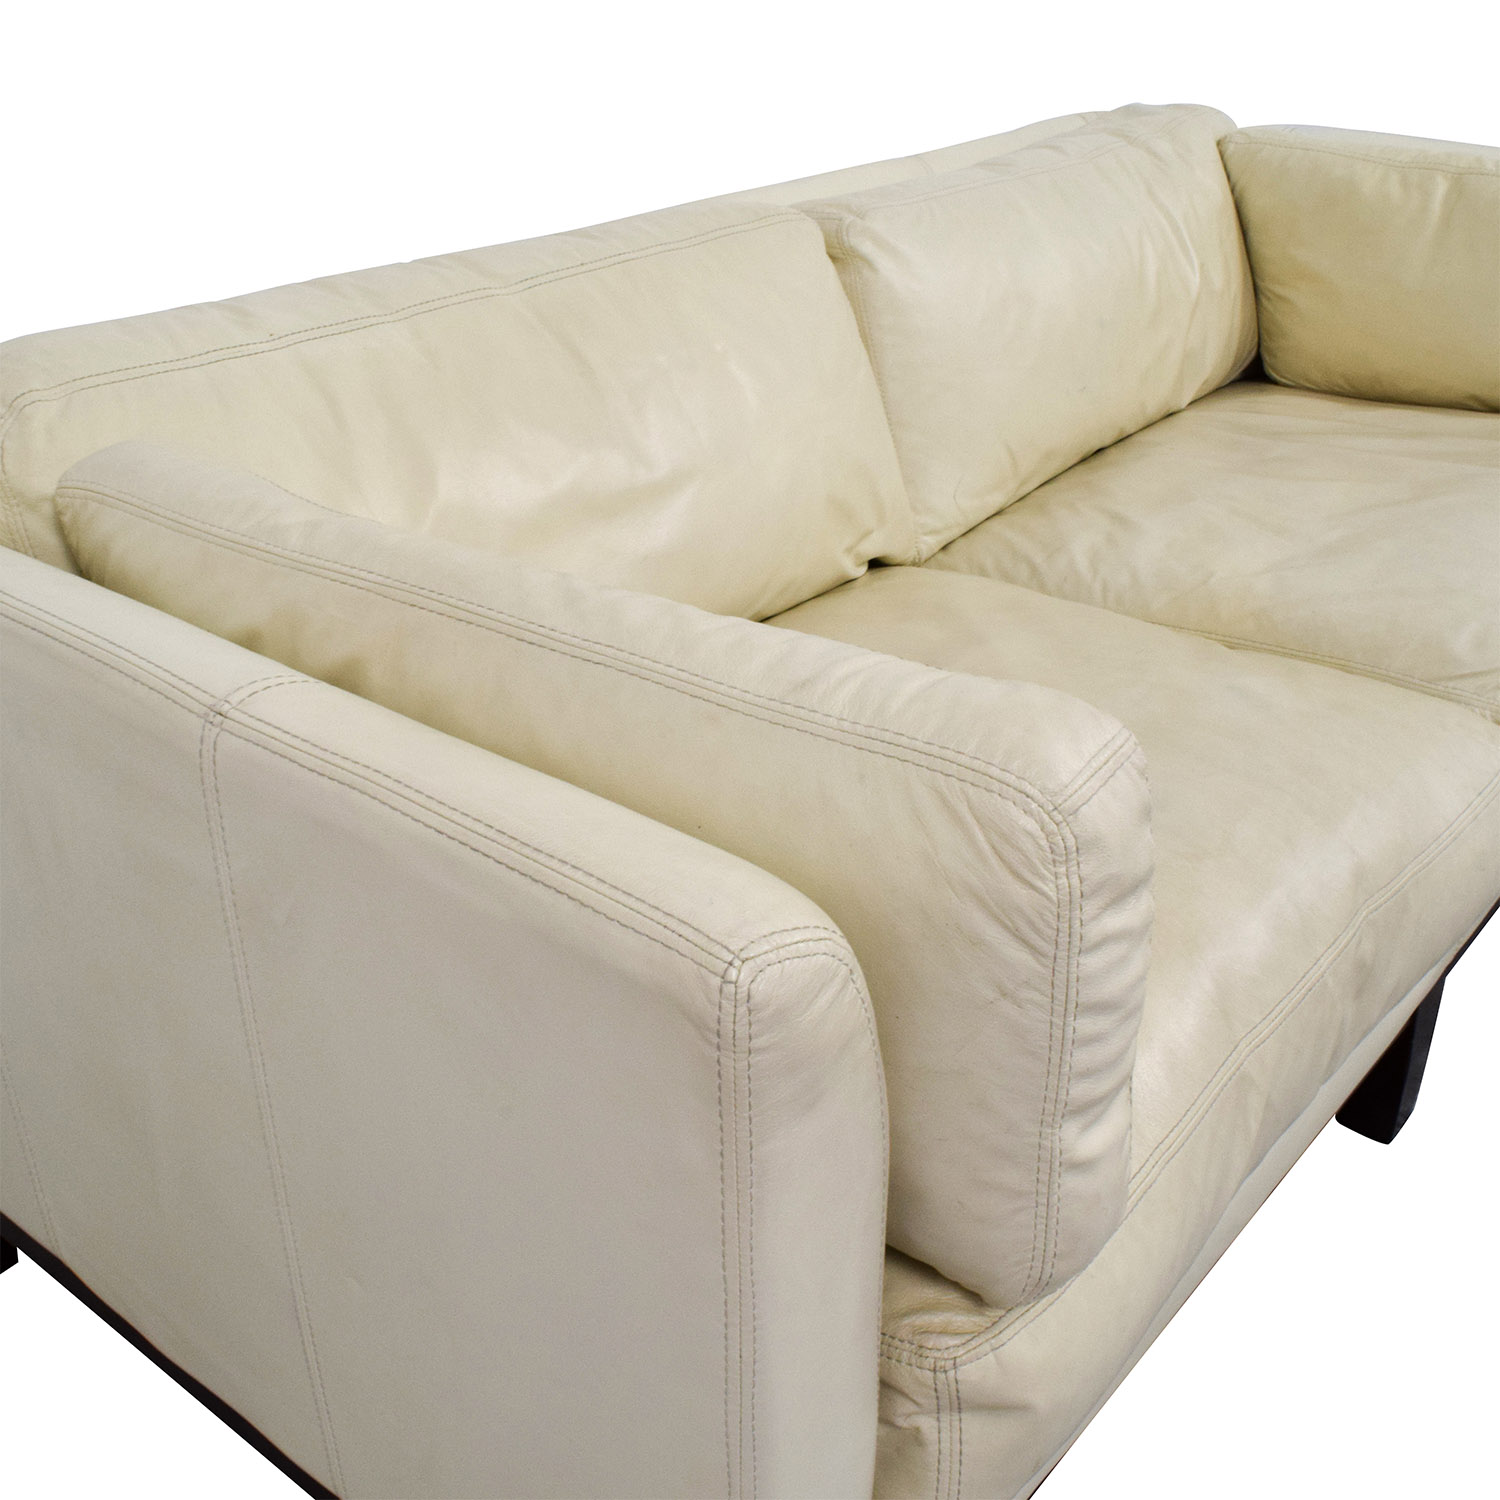 72 Off Decoro Decoro Off White Leather Sofa Sofas